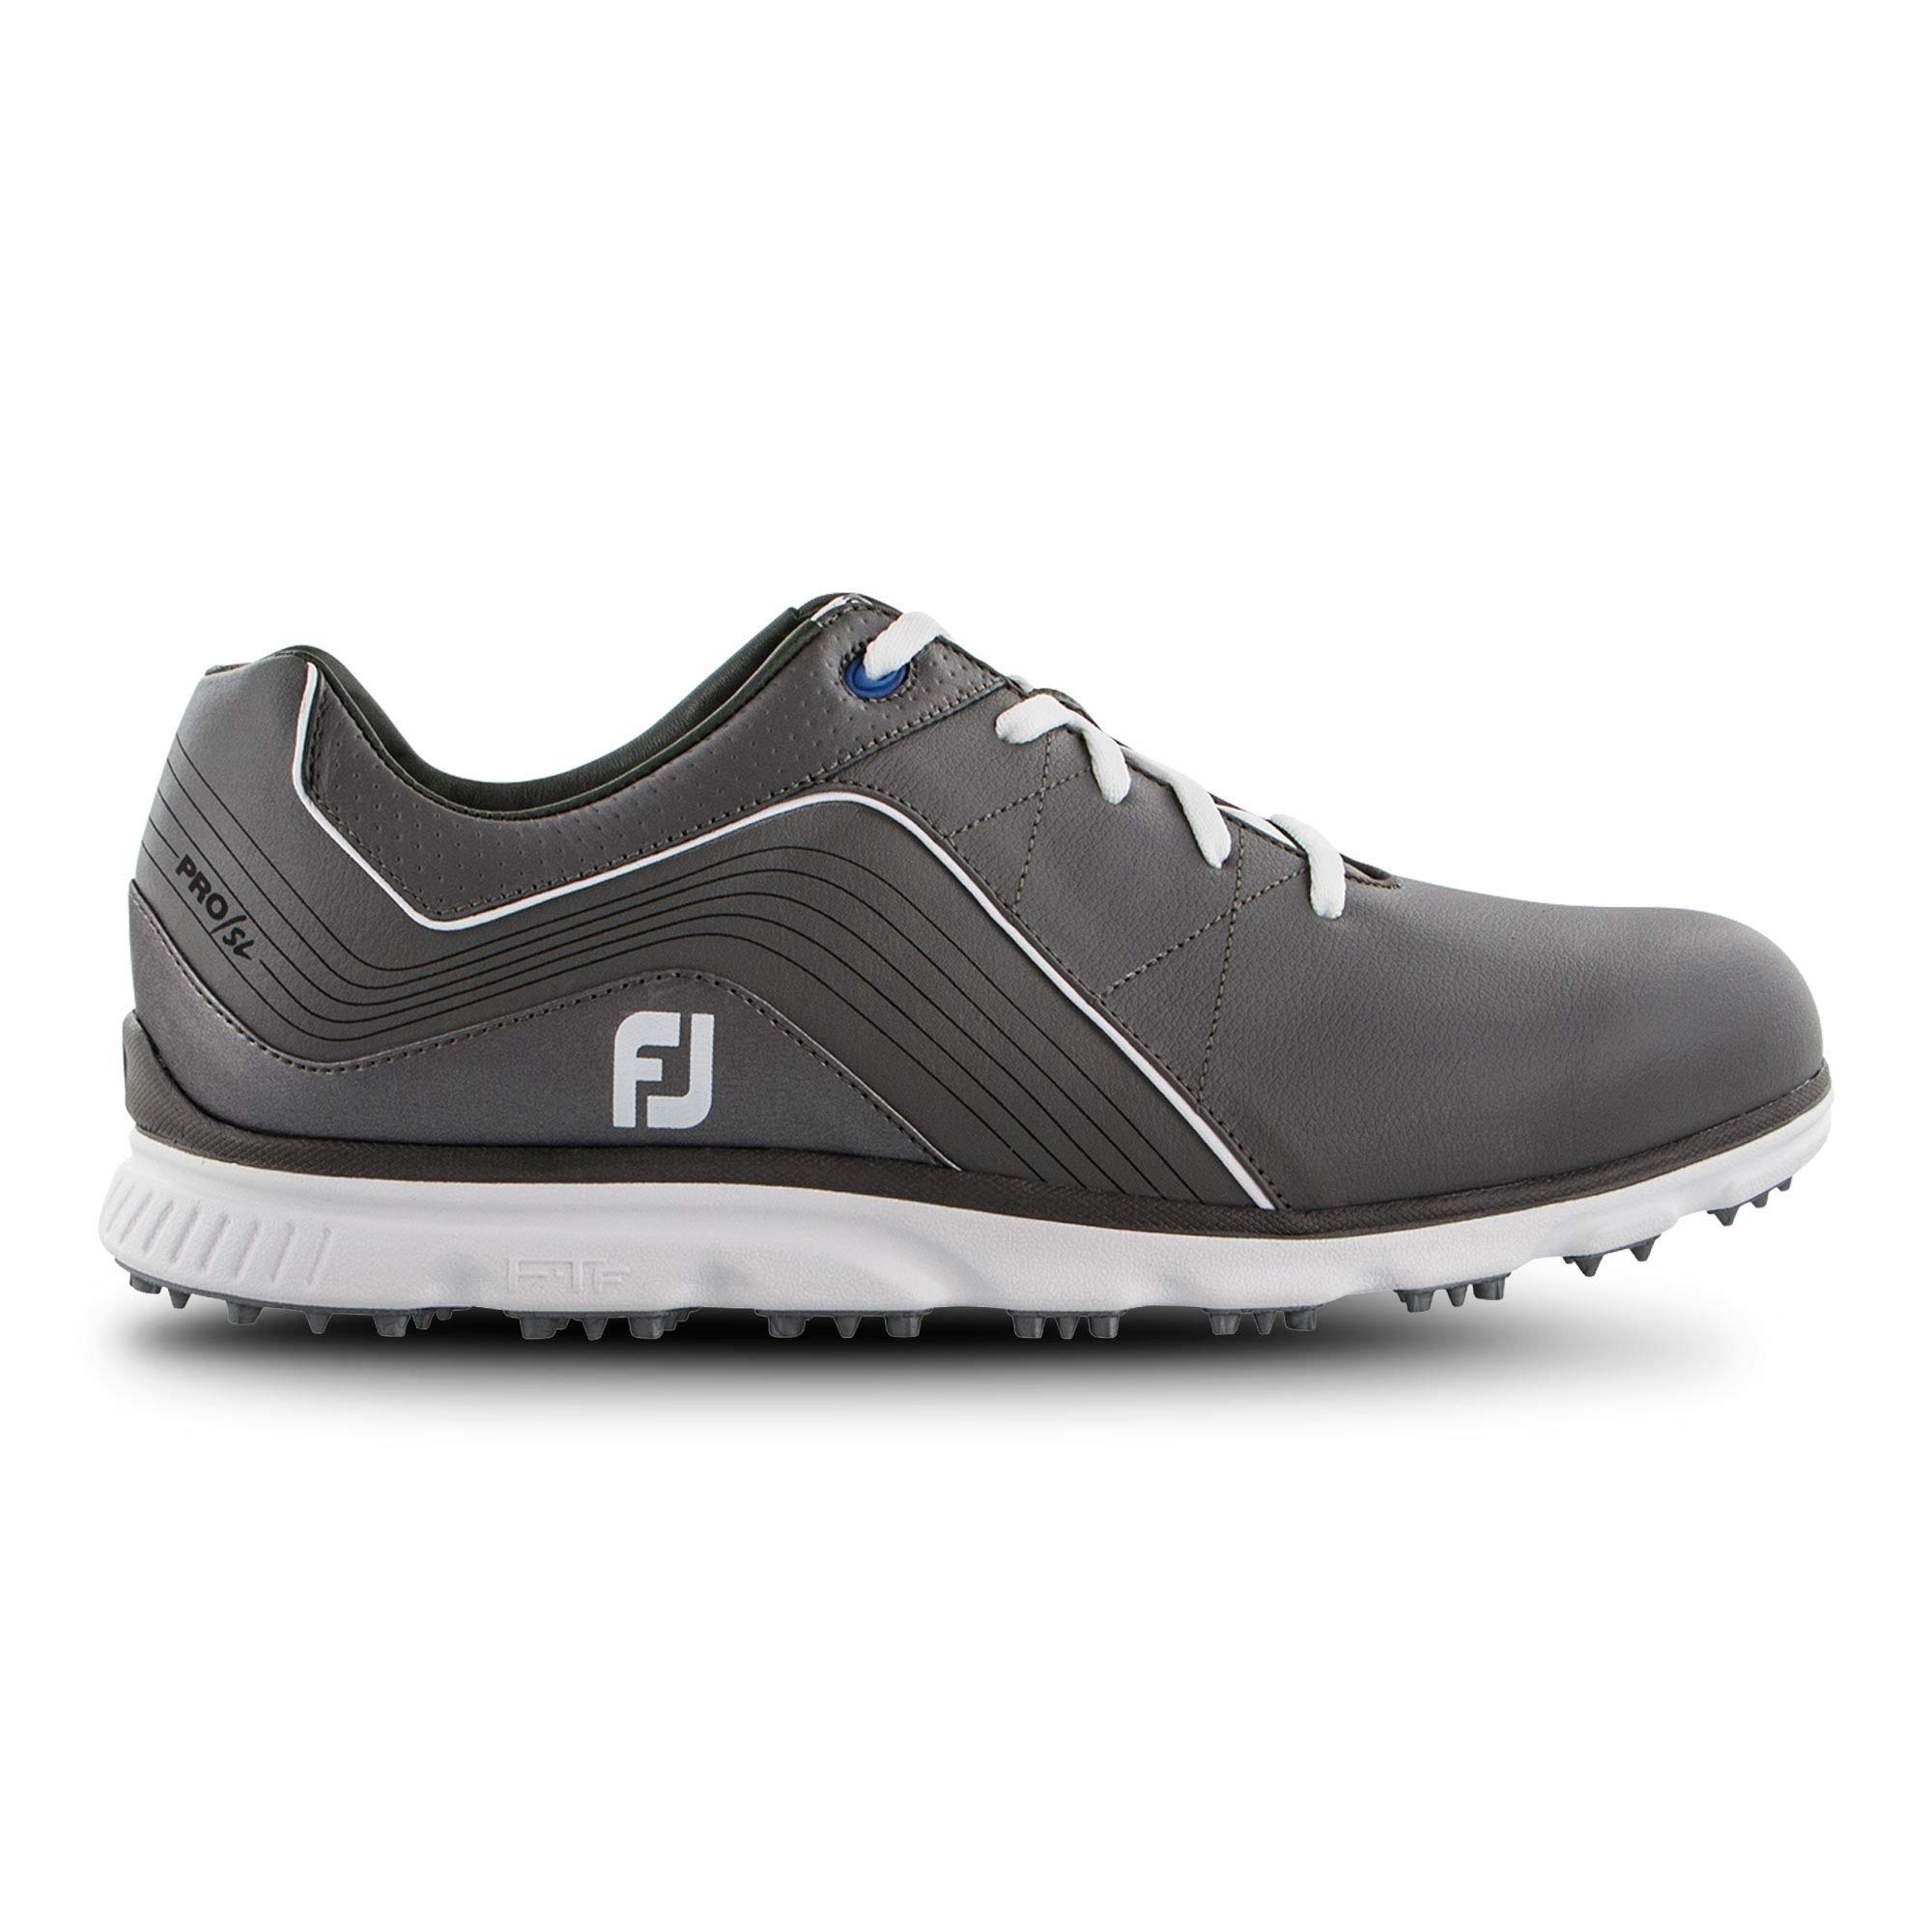 FootJoy Men's Pro/SL Golf Shoes Grey 7.5 M US by FootJoy